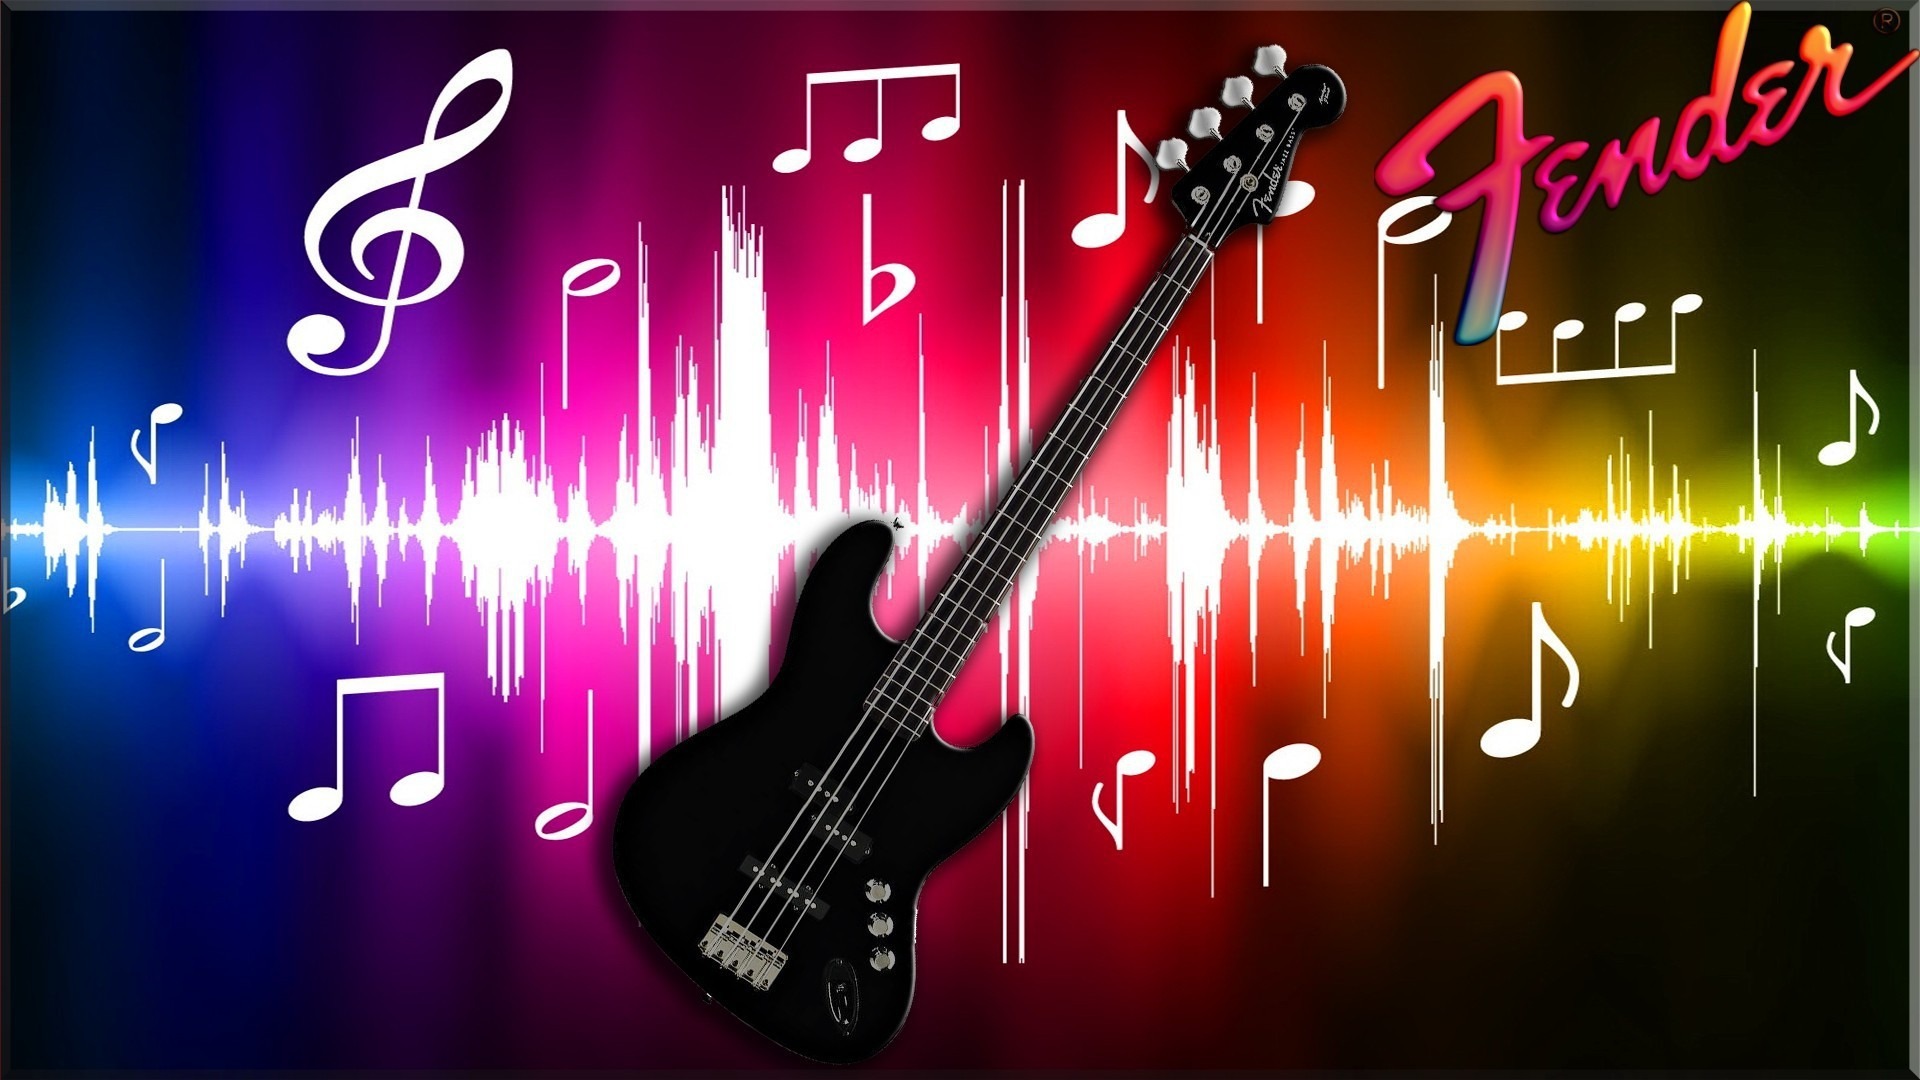 Black-fender-bass-guitar-via-www-all-in-x-fender-bass-guitar-wallpaper-wp5403719